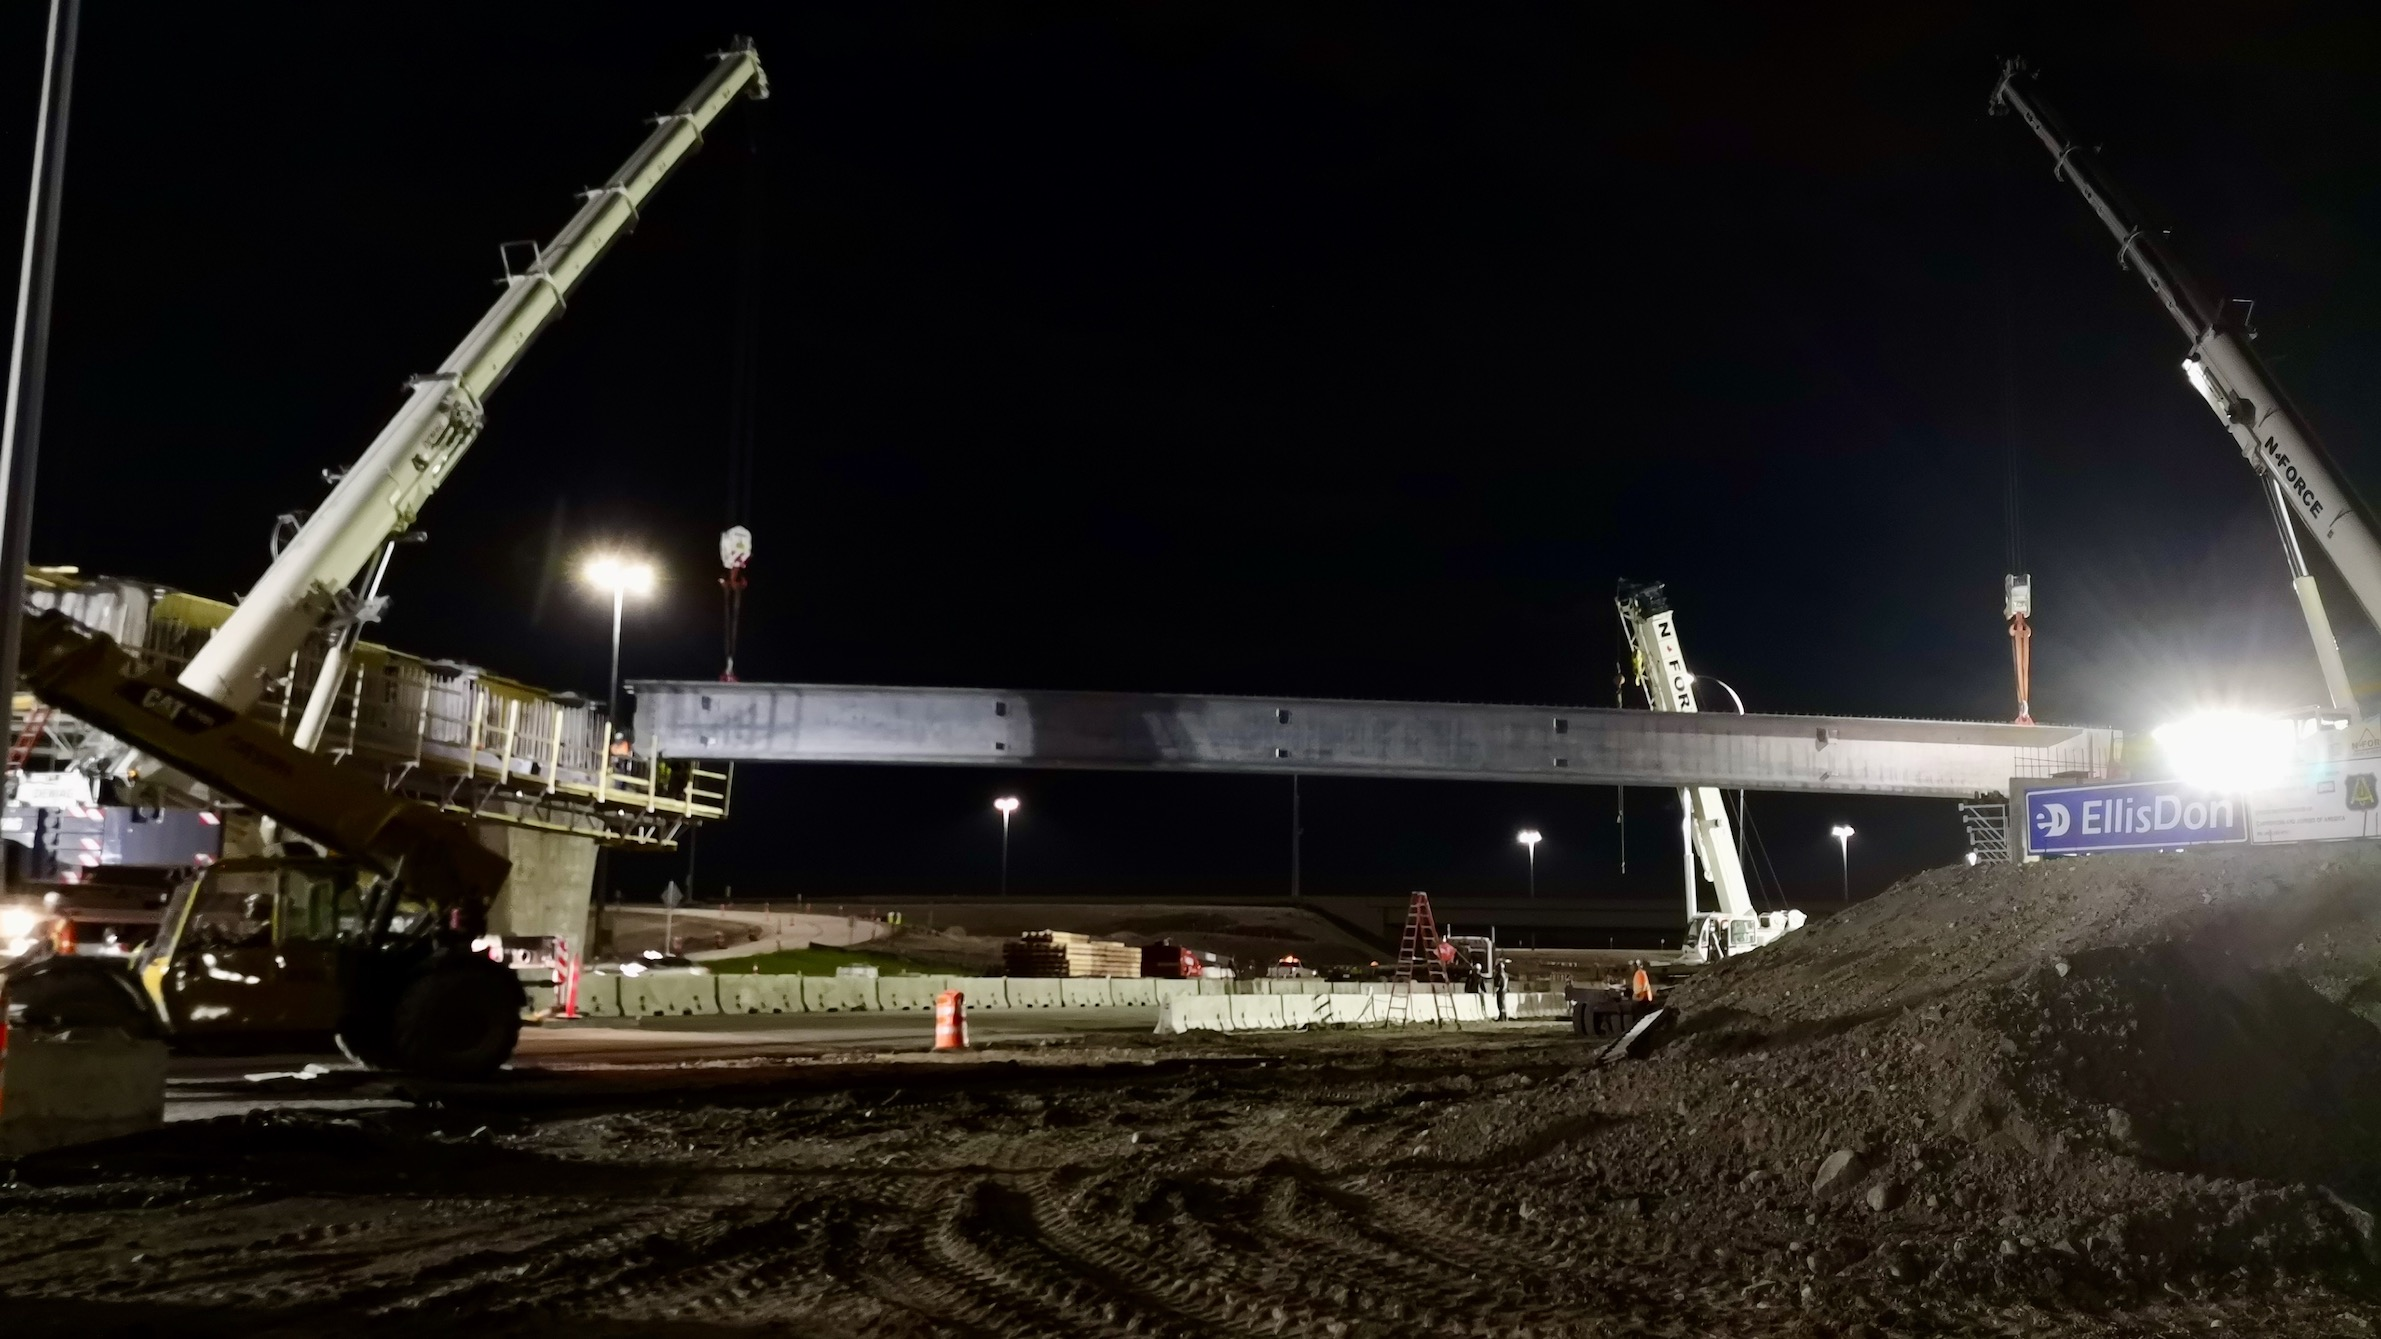 First girder installed on south span